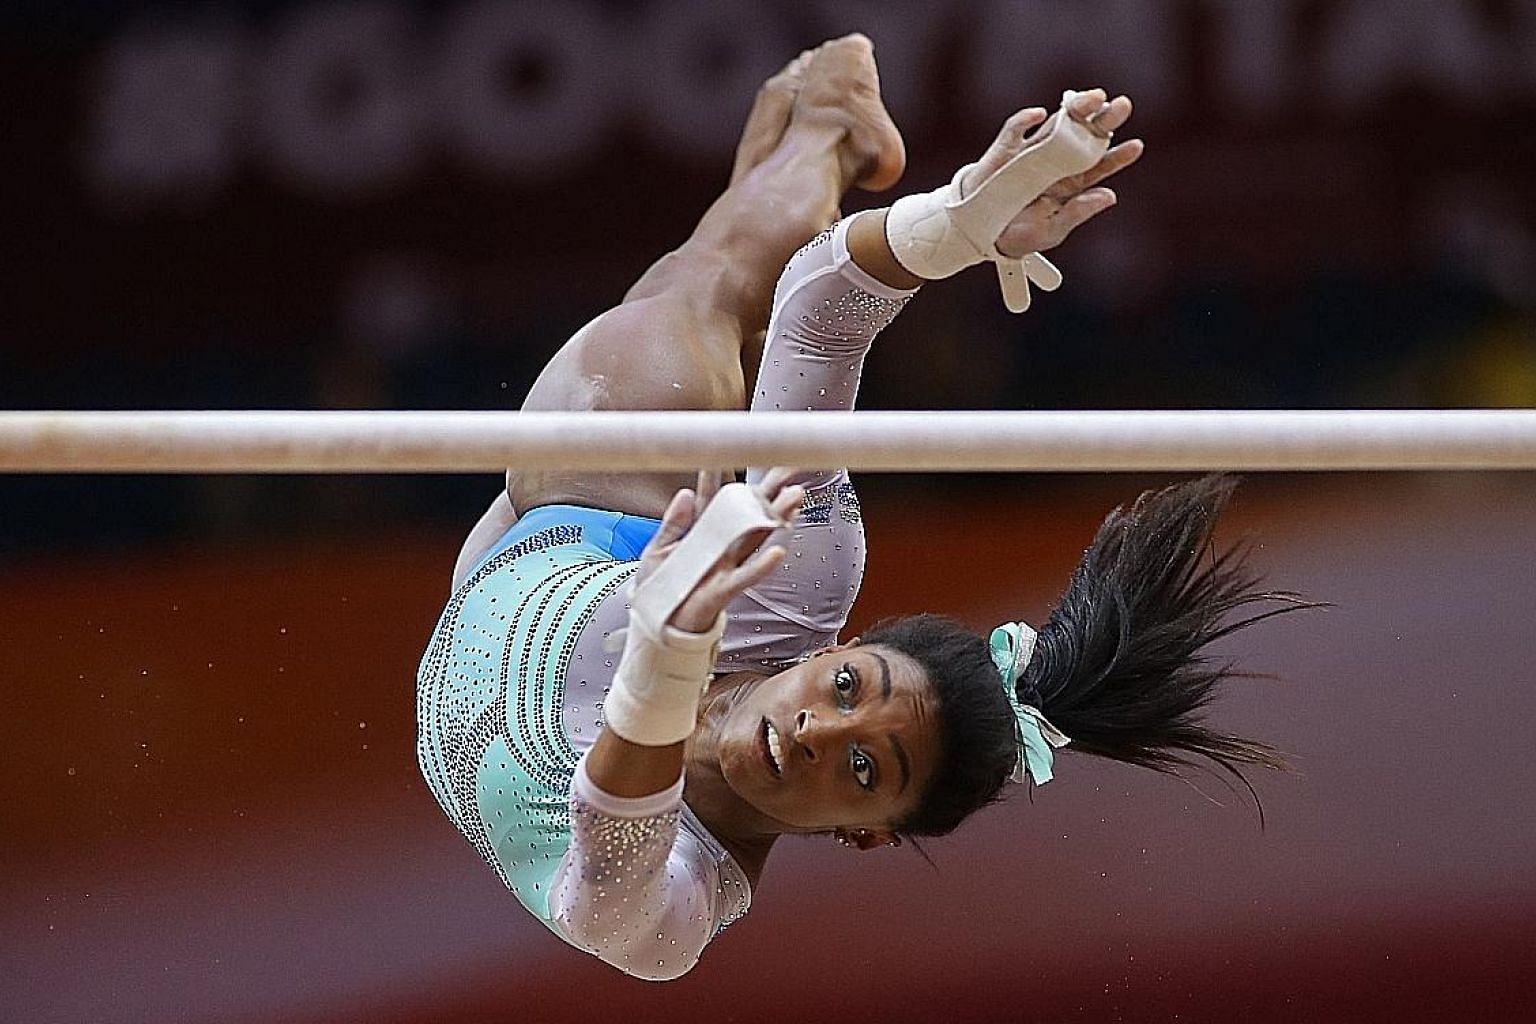 Despite falls on the balance beam and vault, Simone Biles proved too good as she won the all-around title at the World Gymnastics Championships in Doha on Thursday.